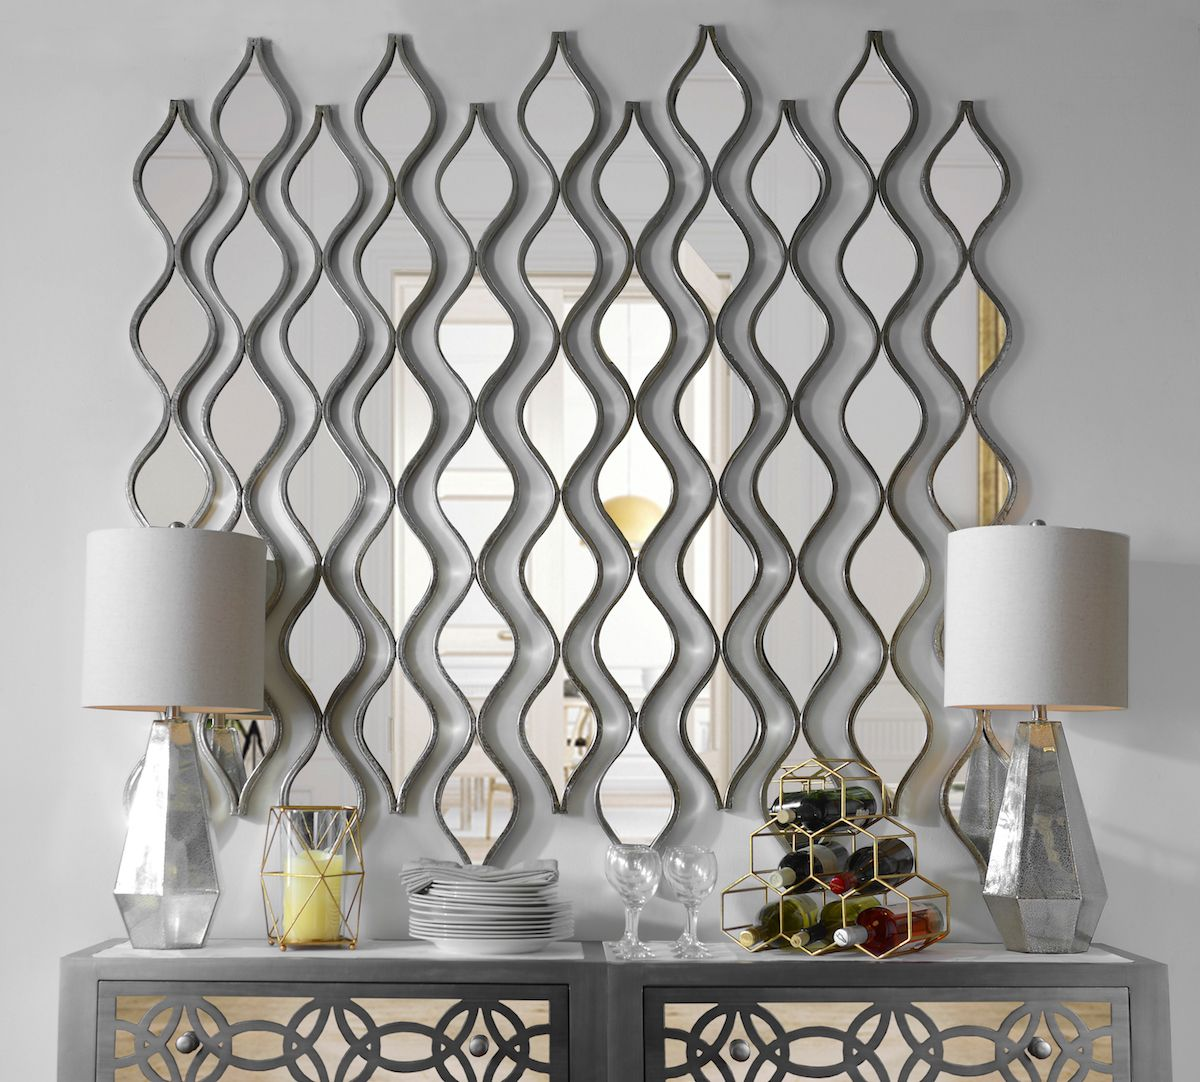 Single Silver Teardrop Panel Mirror 6 25x58 75 Mirror Decor Mirror Design Wall Home Decor